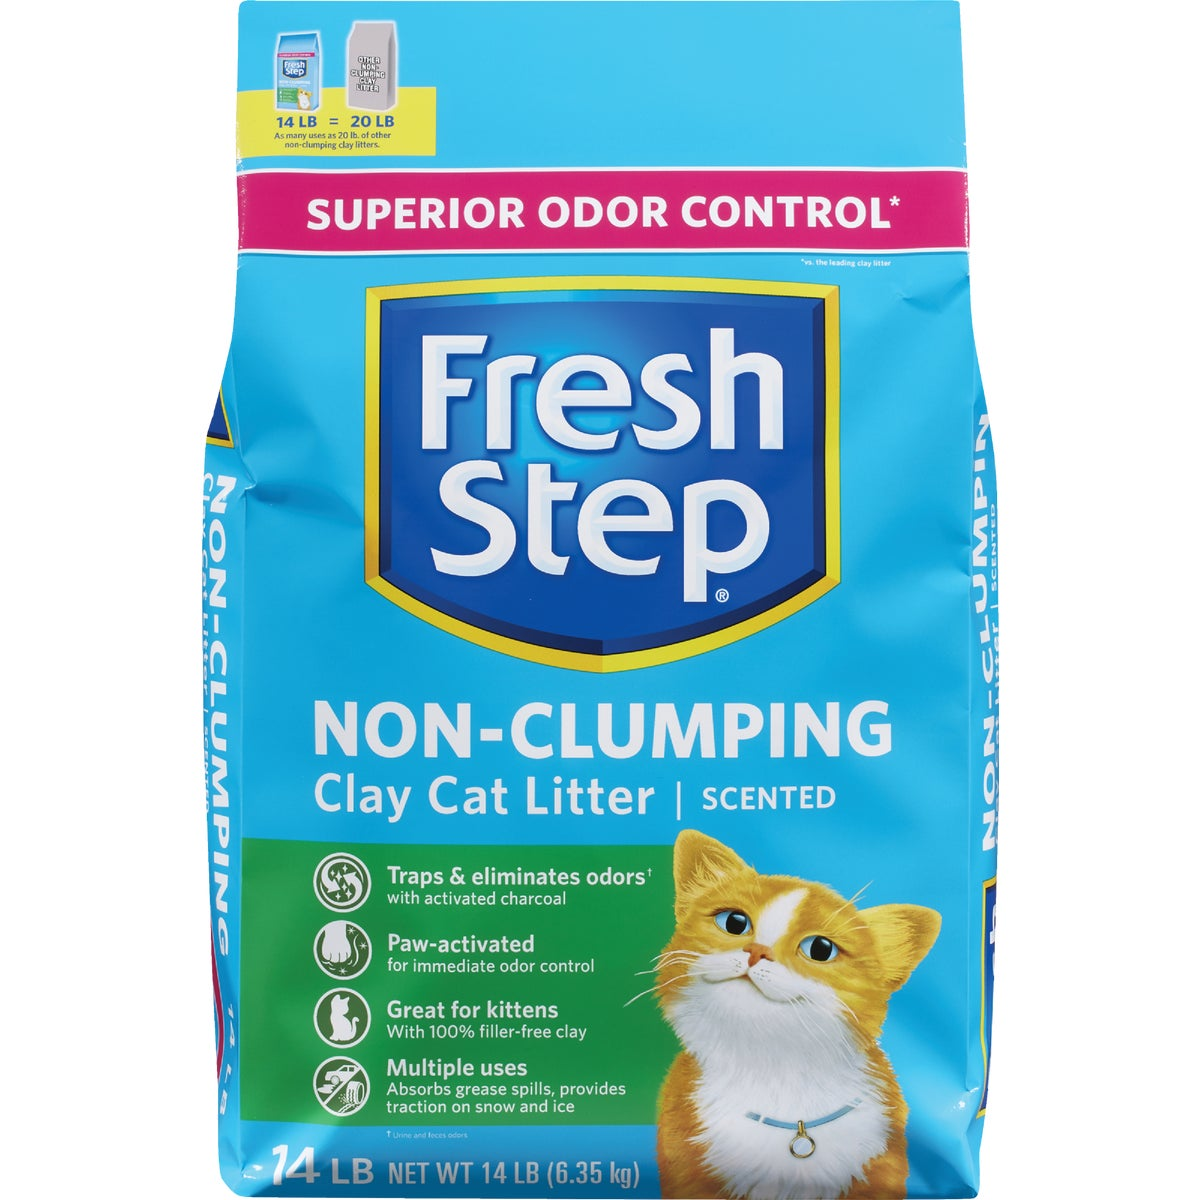 14LB BAG FRSHSTEP LITTER - 20020 by Clorox/home Cleaning